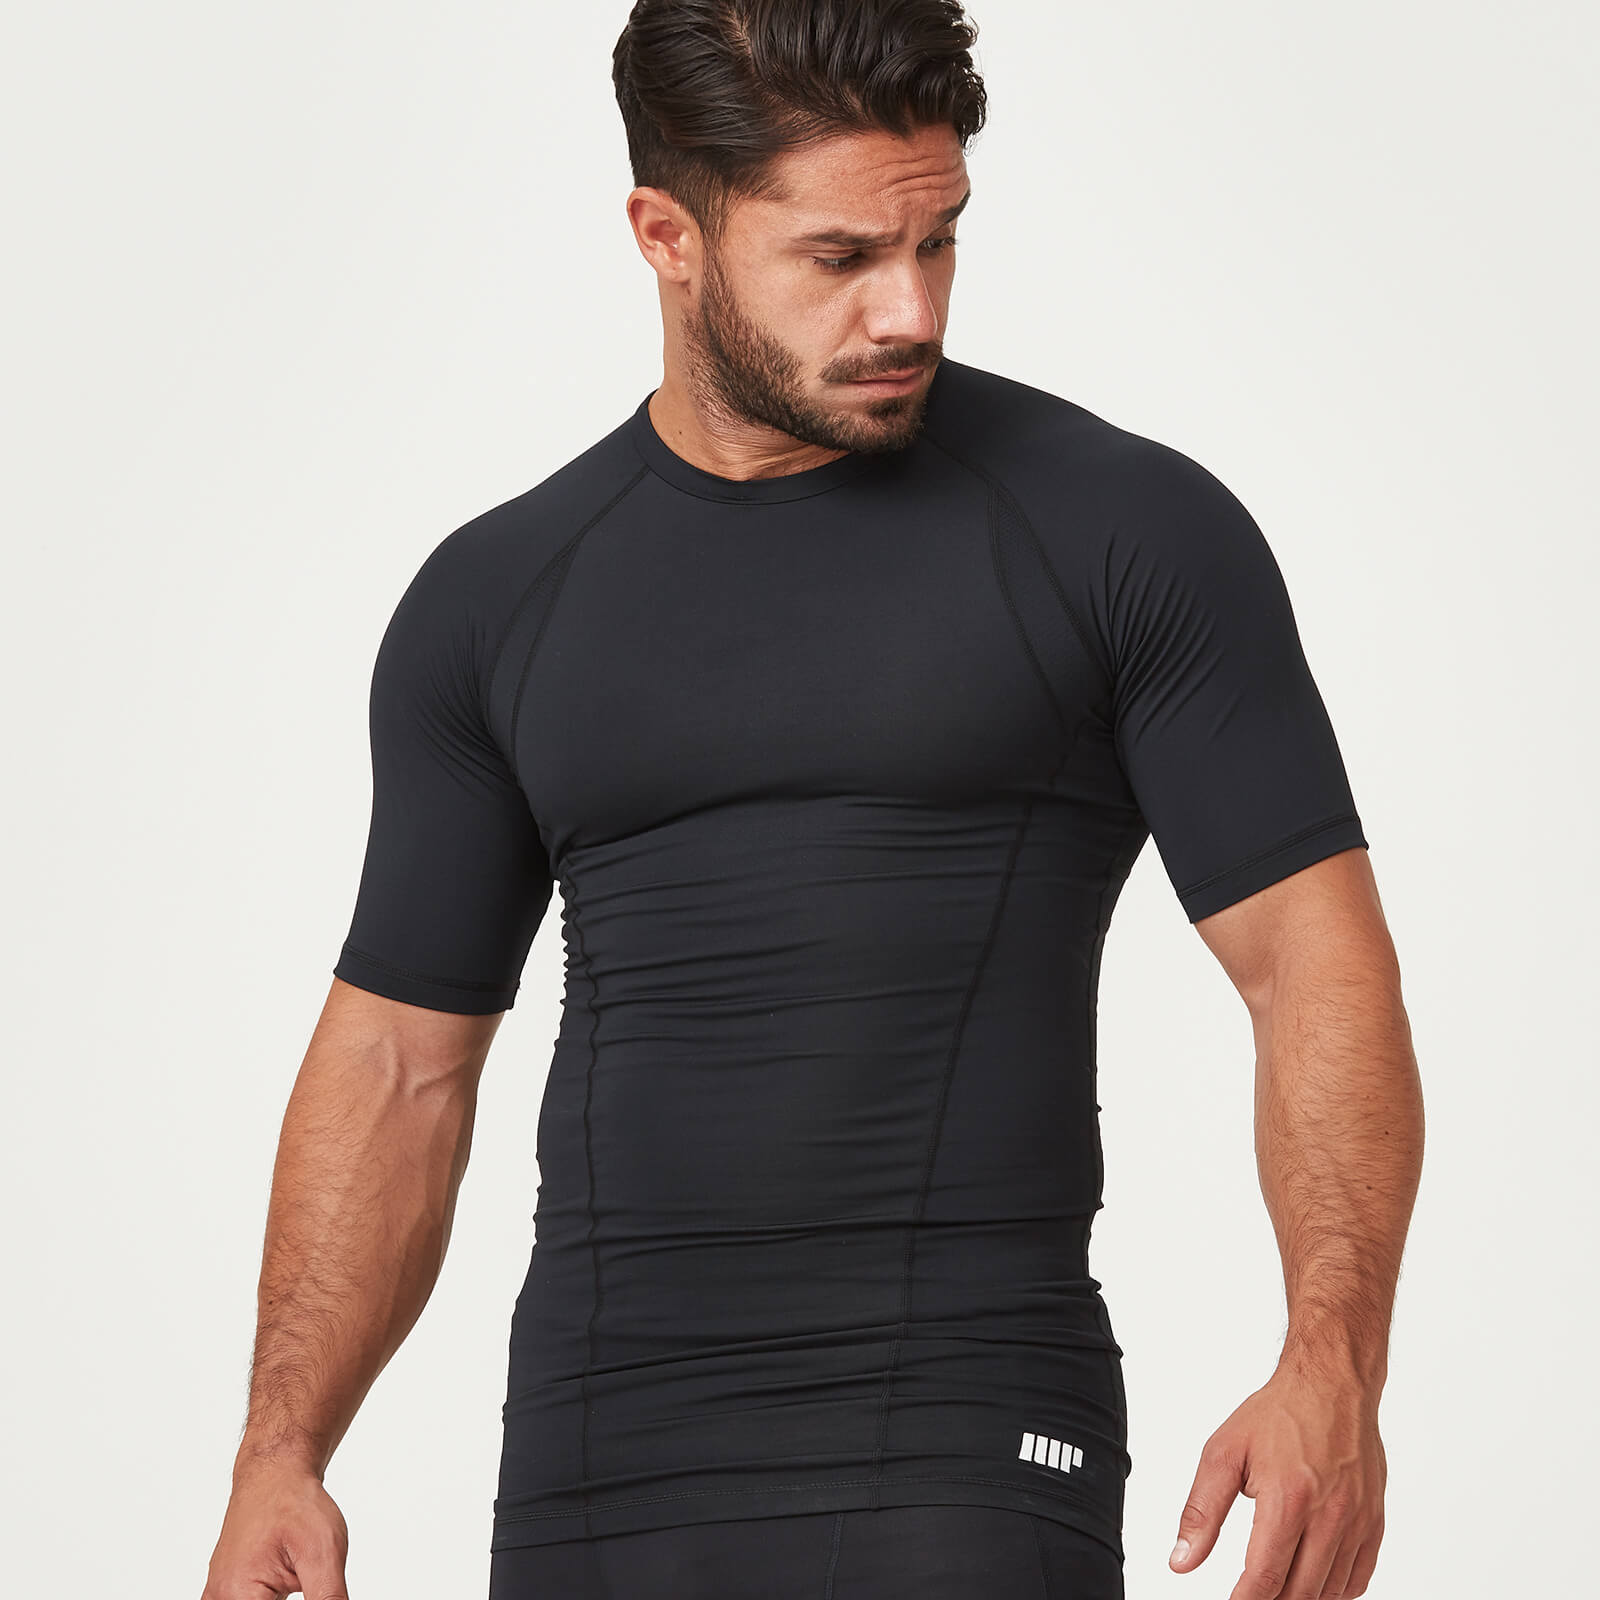 Myprotein Compression Short Sleeve T-Shirt - Black - L